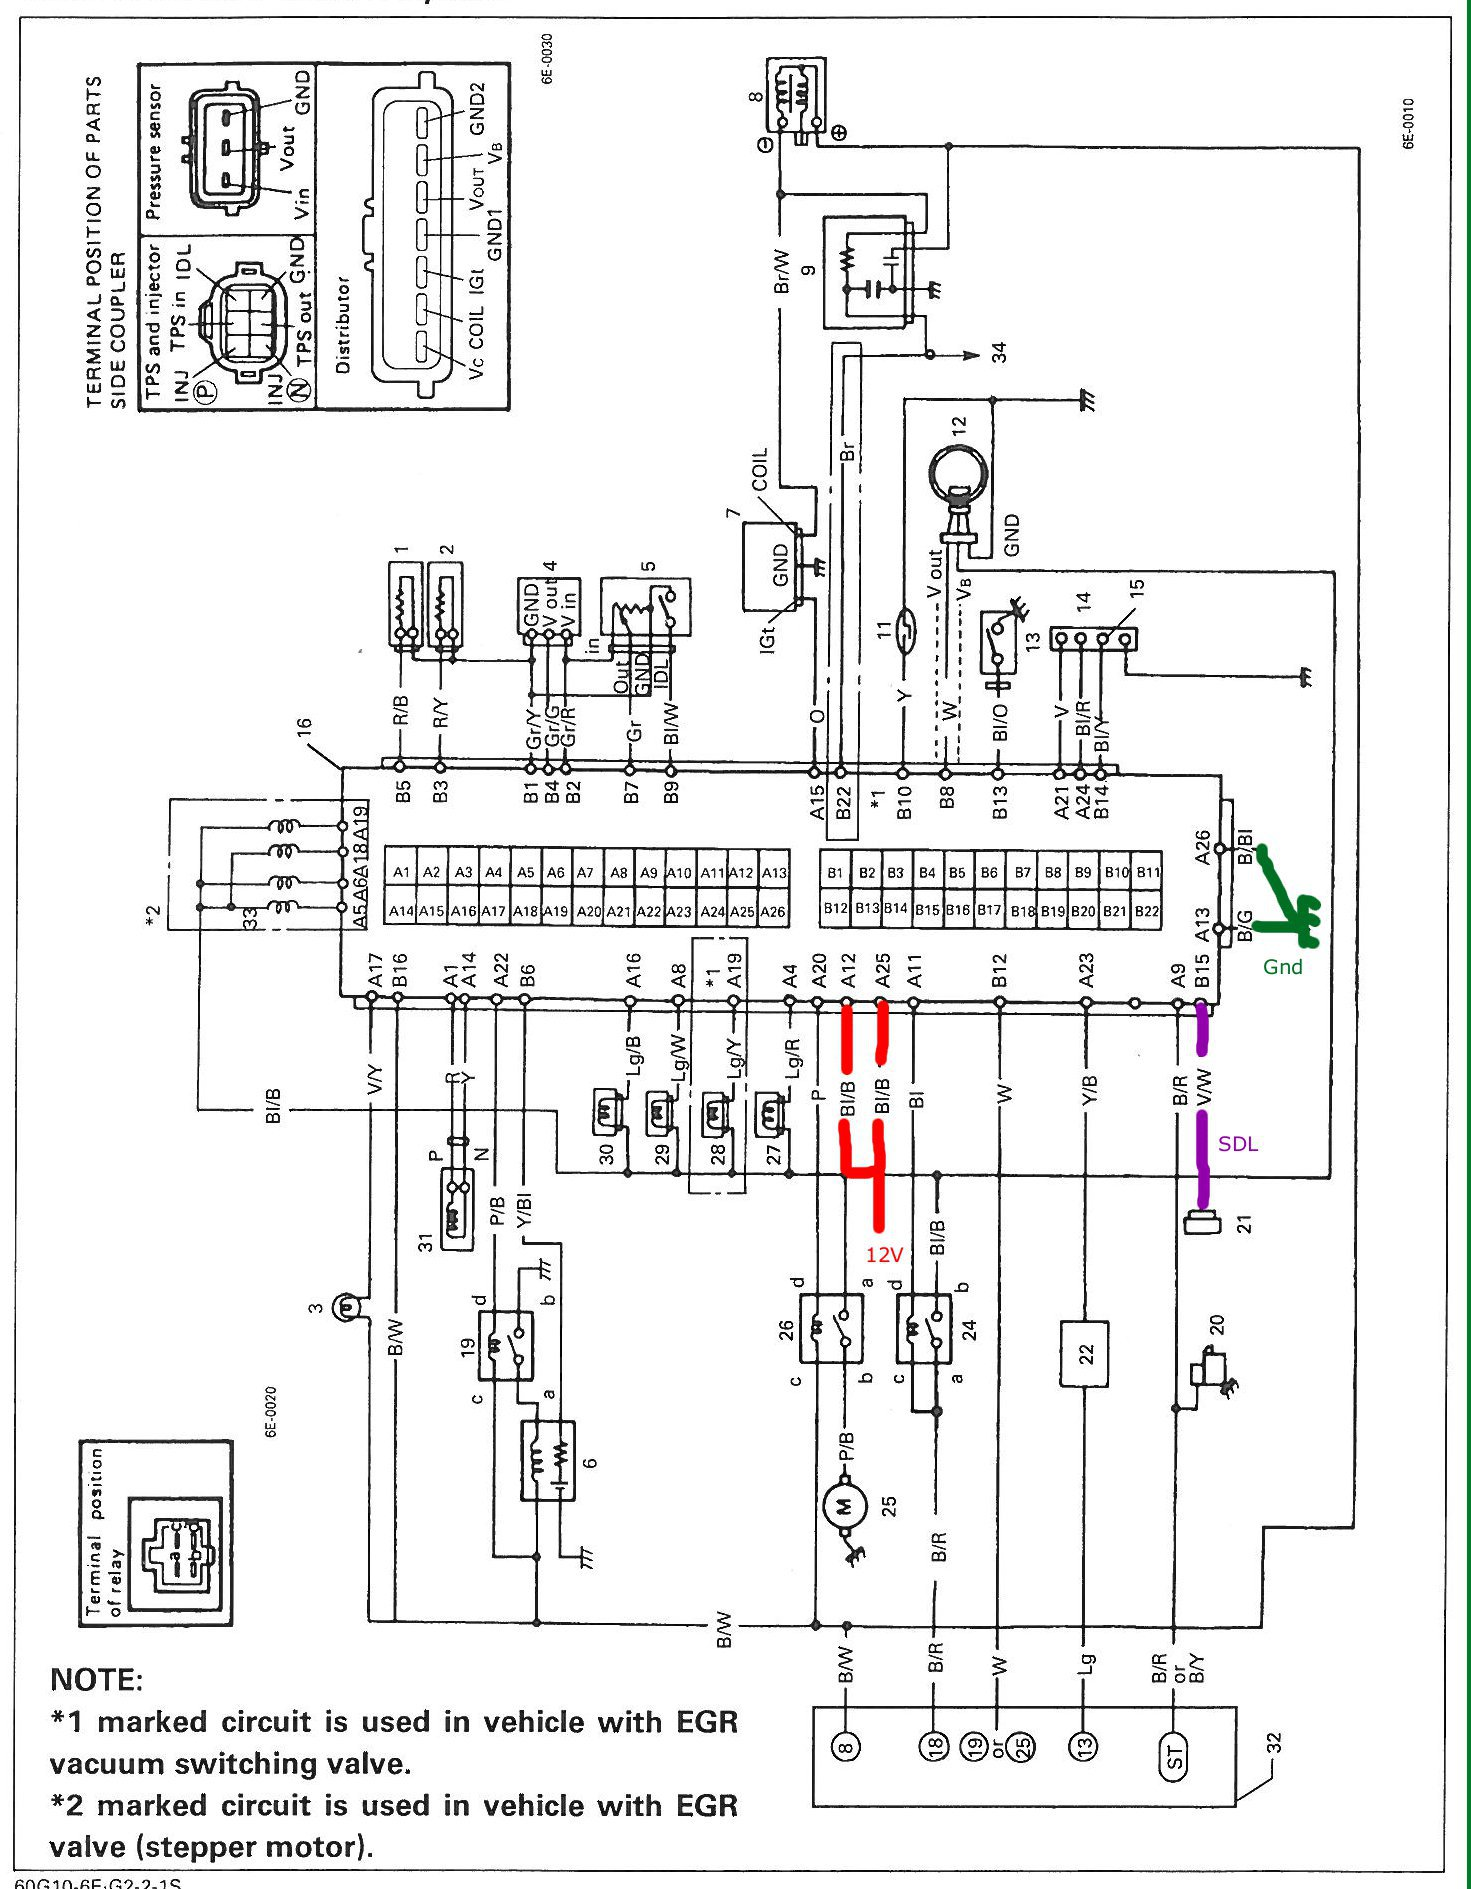 Suzuki X90 Wiring Diagram Electrical Schematics Ts 250 All Kind Of Diagrams U2022 Ts250